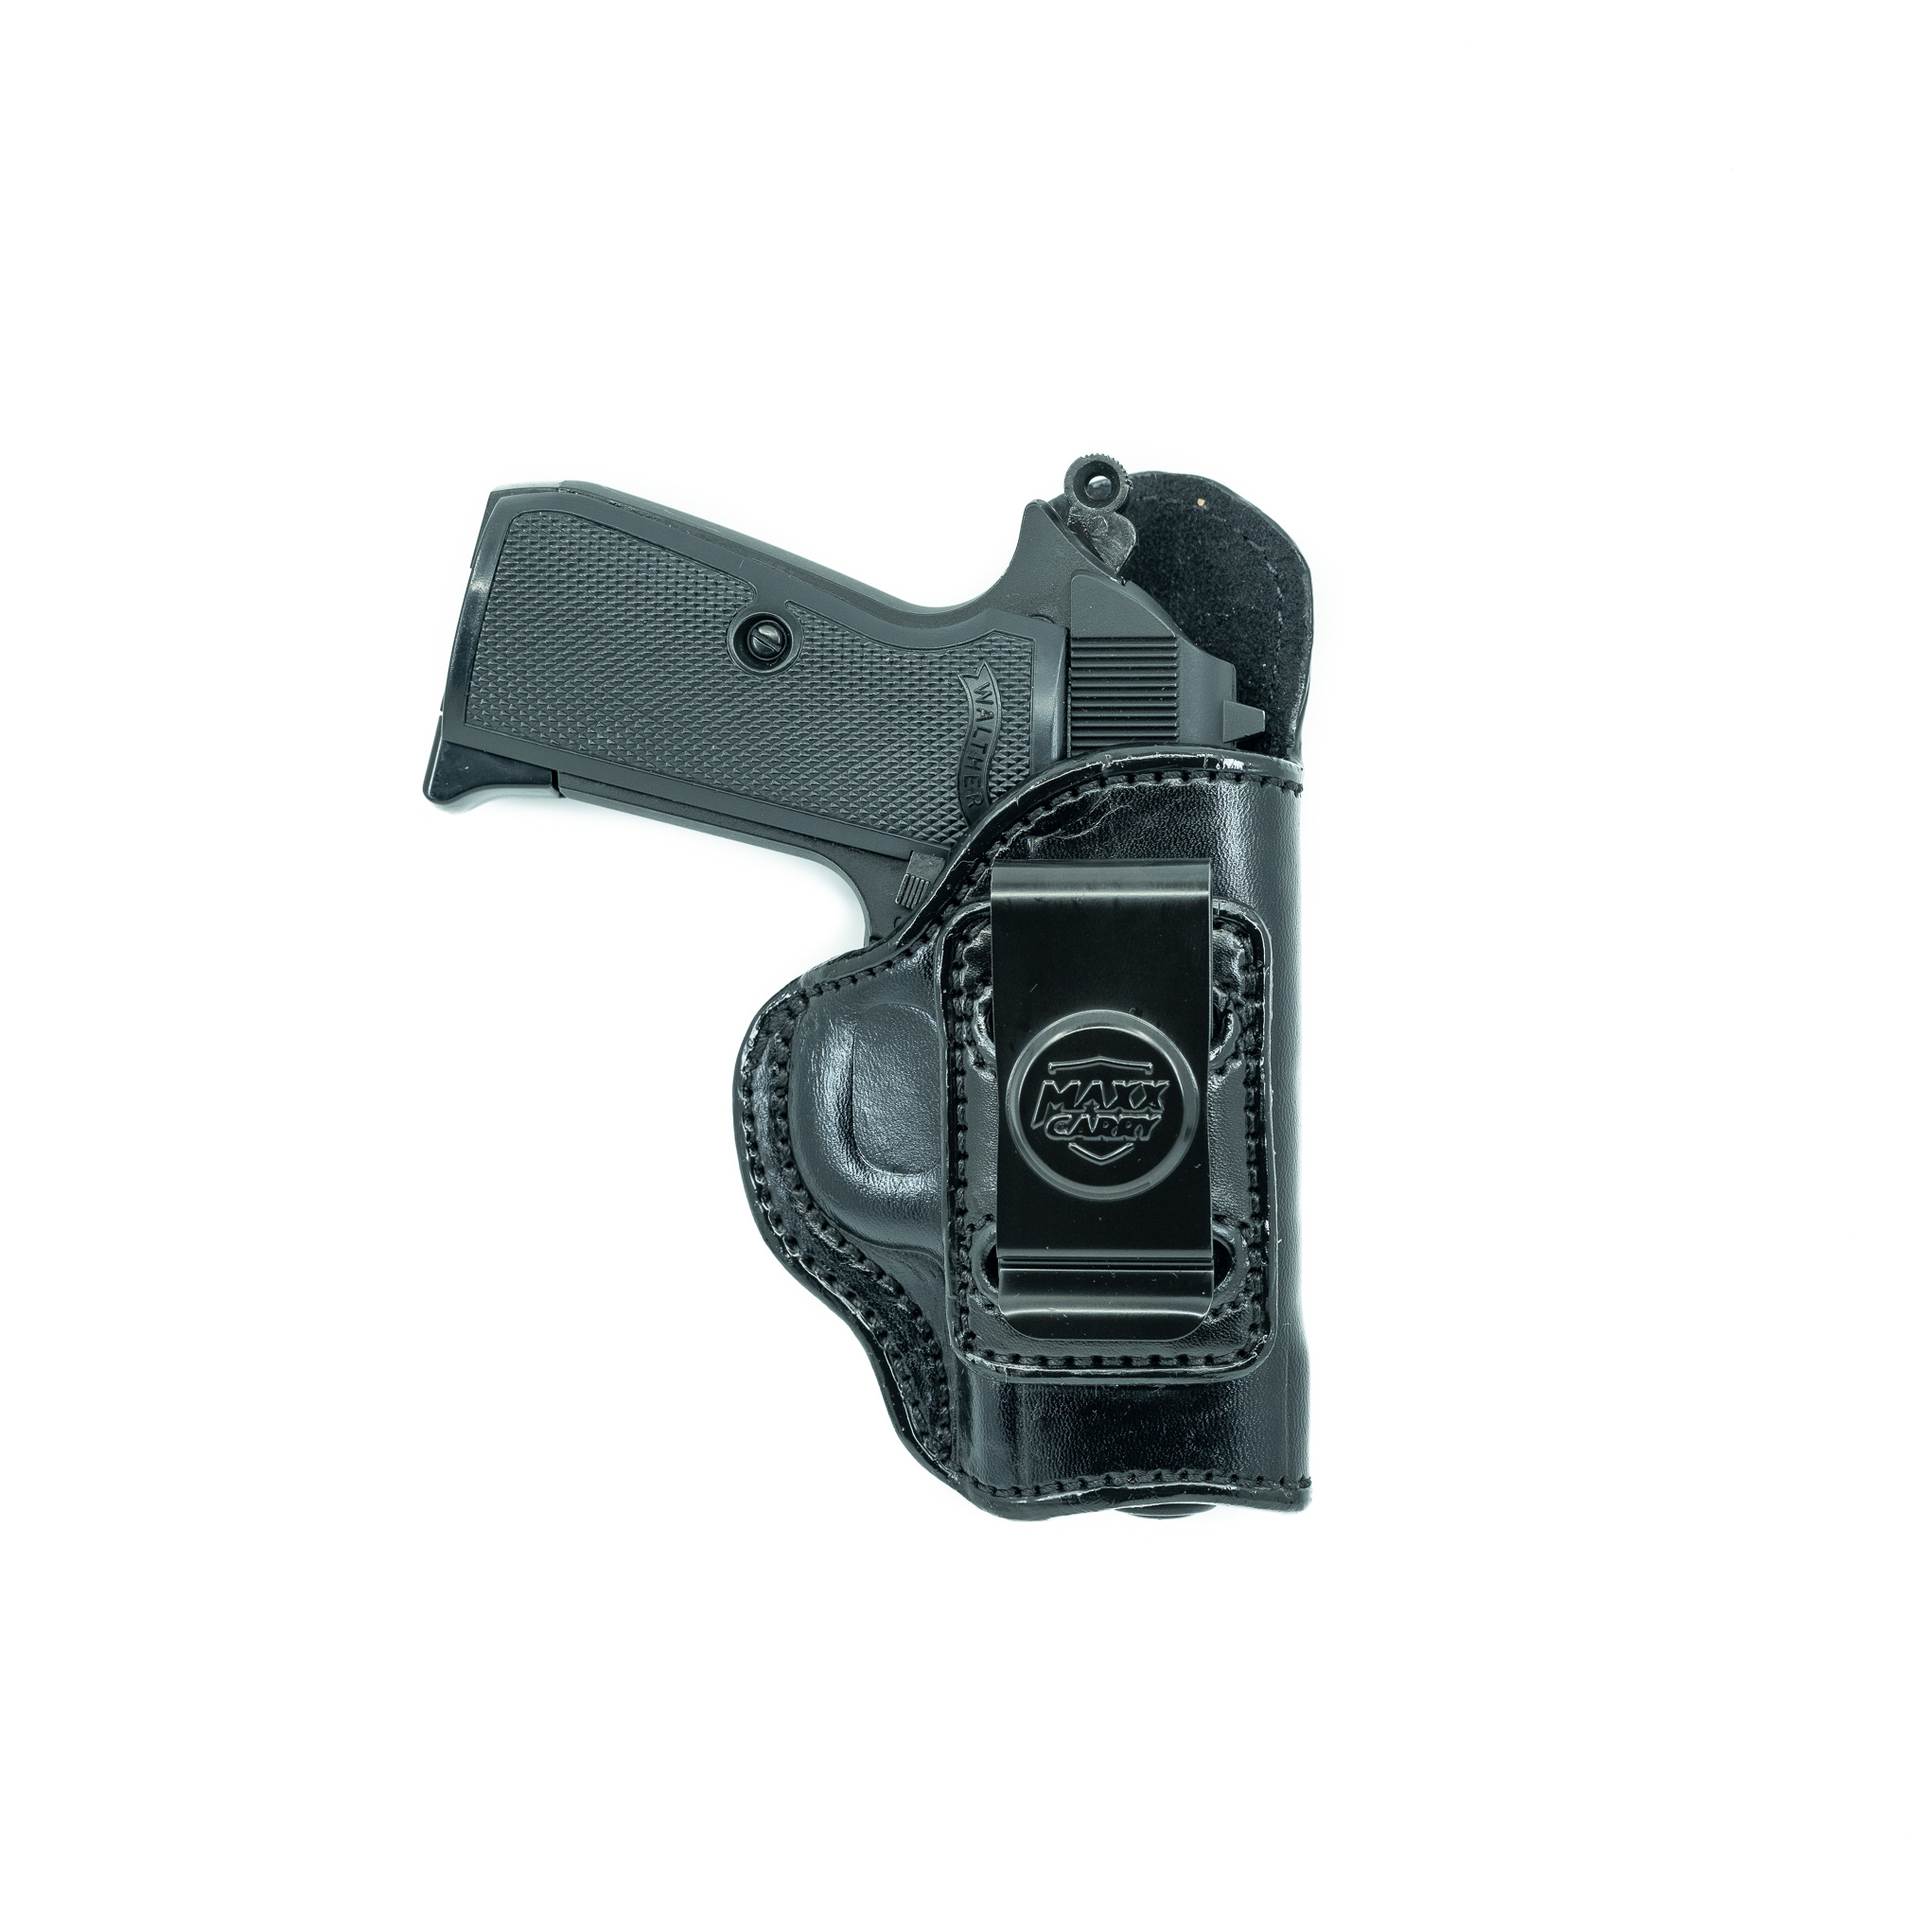 Details about IWB GUN HOLSTER FOR KIMBER ULTRA CARRY II  INSIDE THE  WAISTBAND CONCEAL CARRY